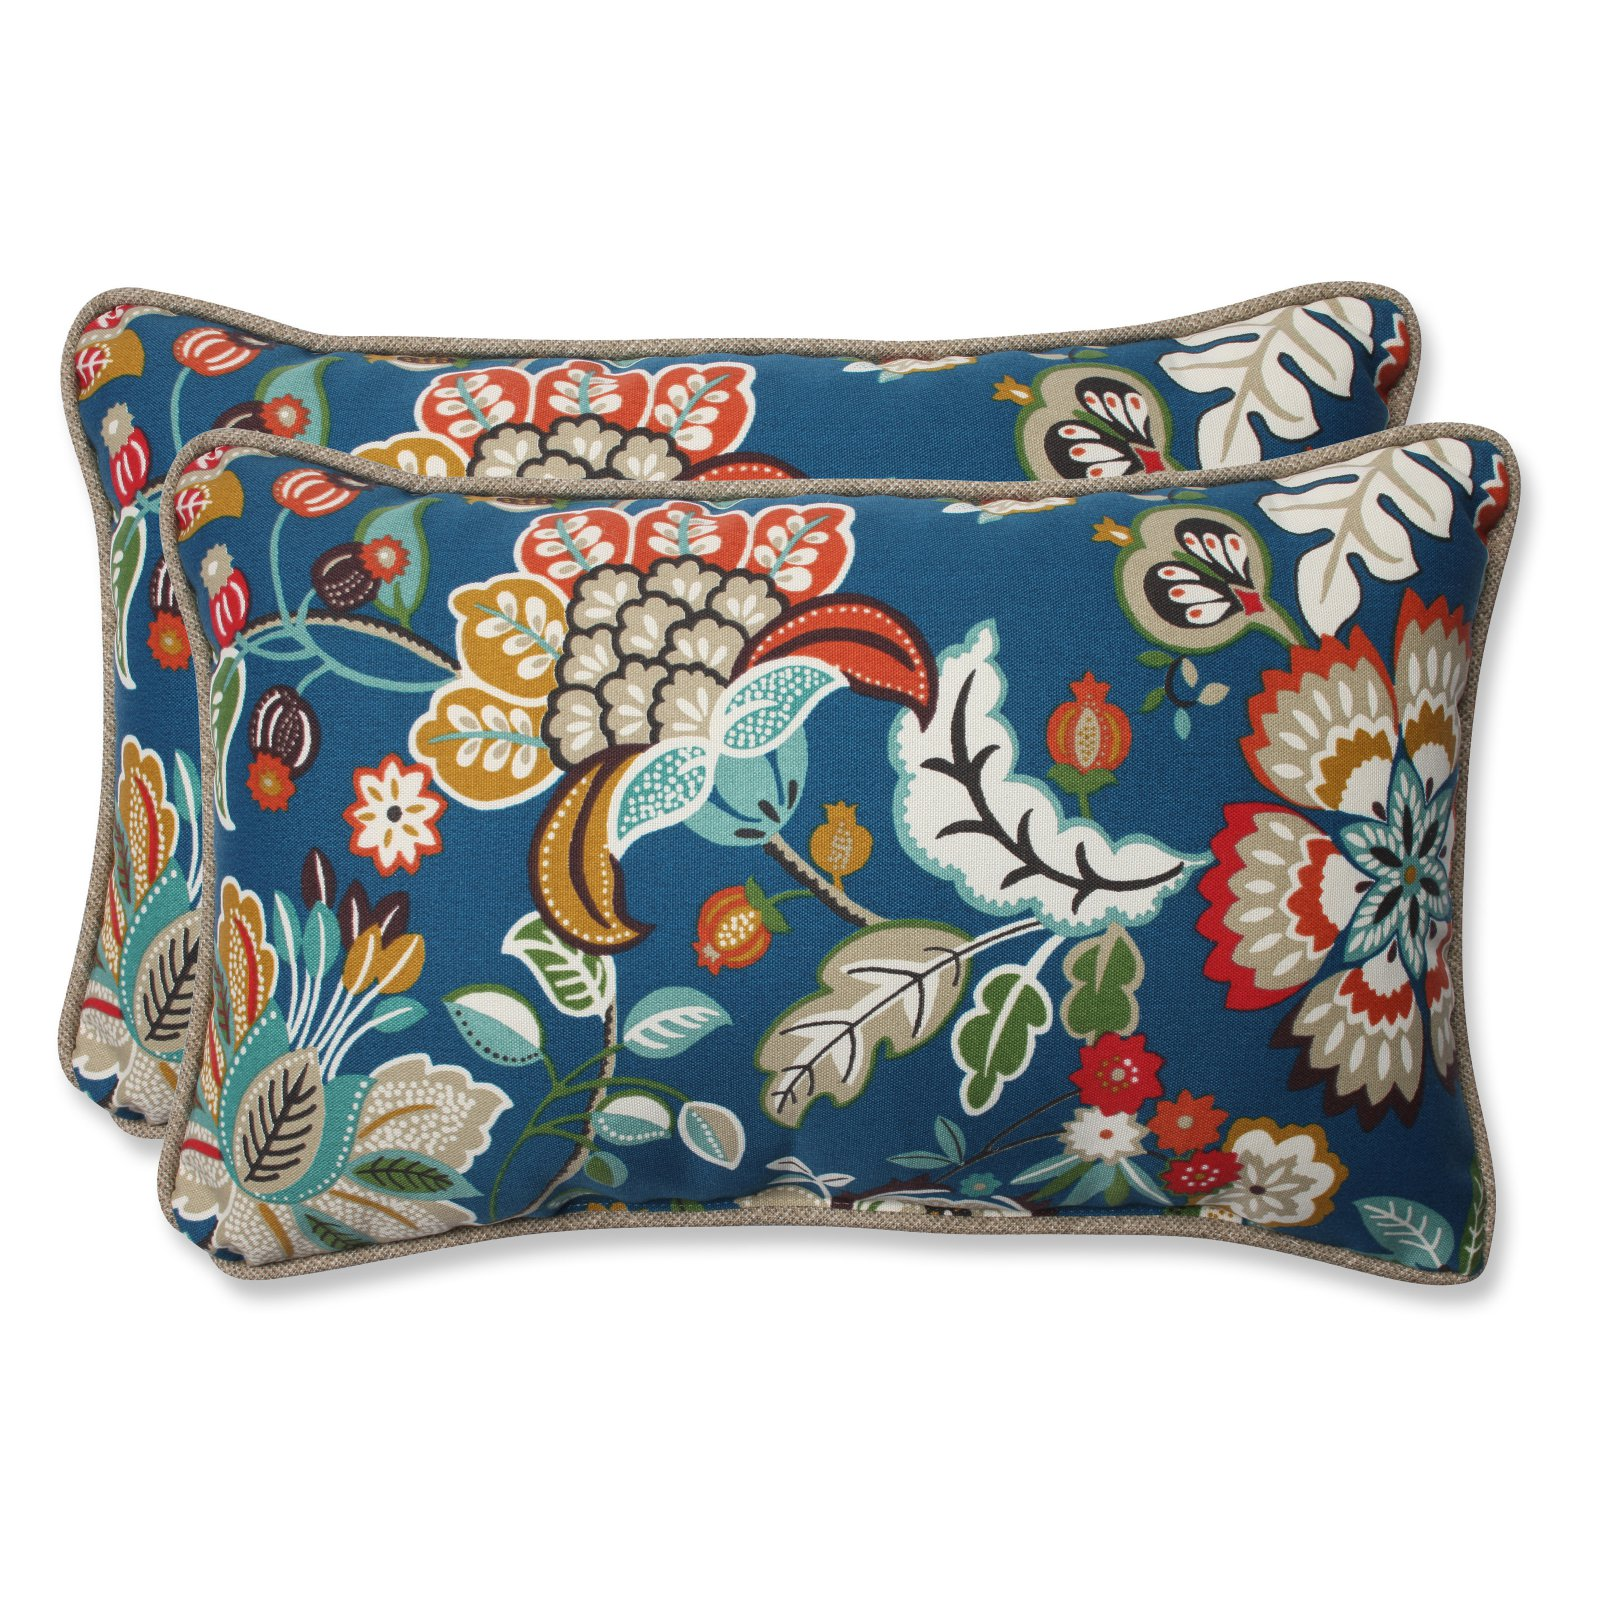 Pillow Perfect Outdoor  Indoor Telfair Peacock Rectangular Throw Pillow (Set of 2) by Overstock